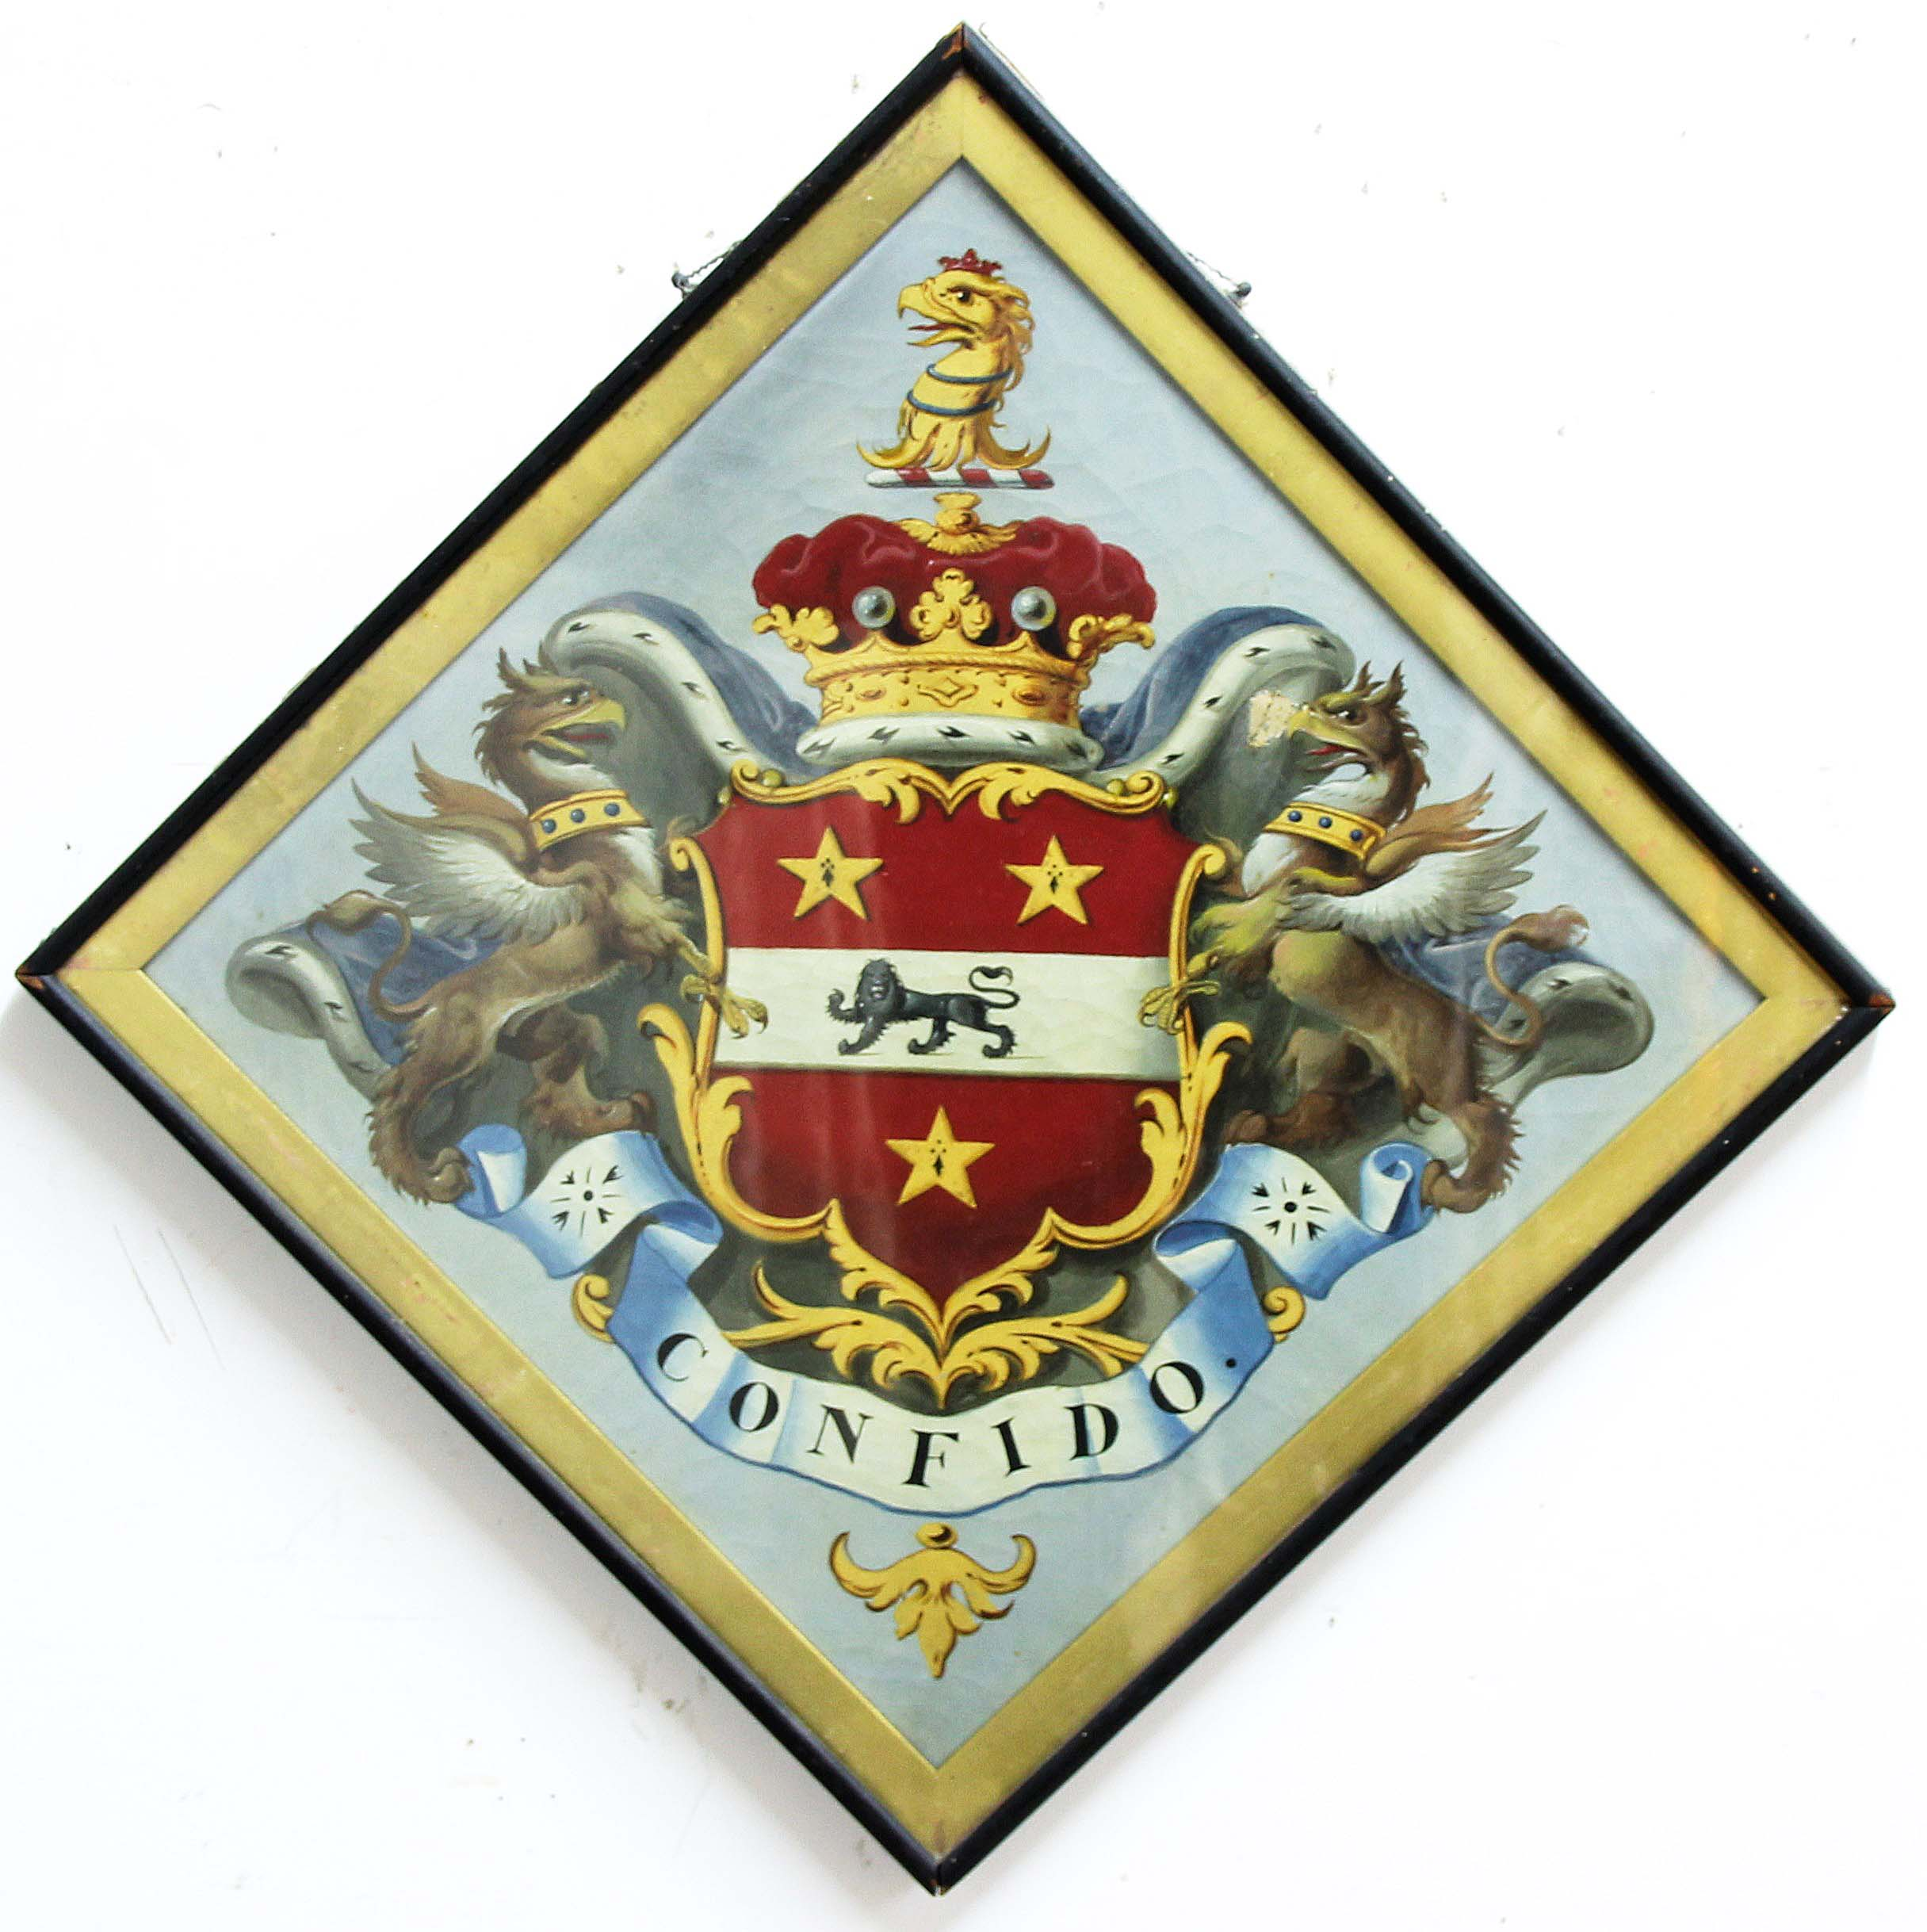 Lot 2070 - 19TH CENTURY HATCHMENT, Crest of a black lion beneath two gold stars and above a single star,